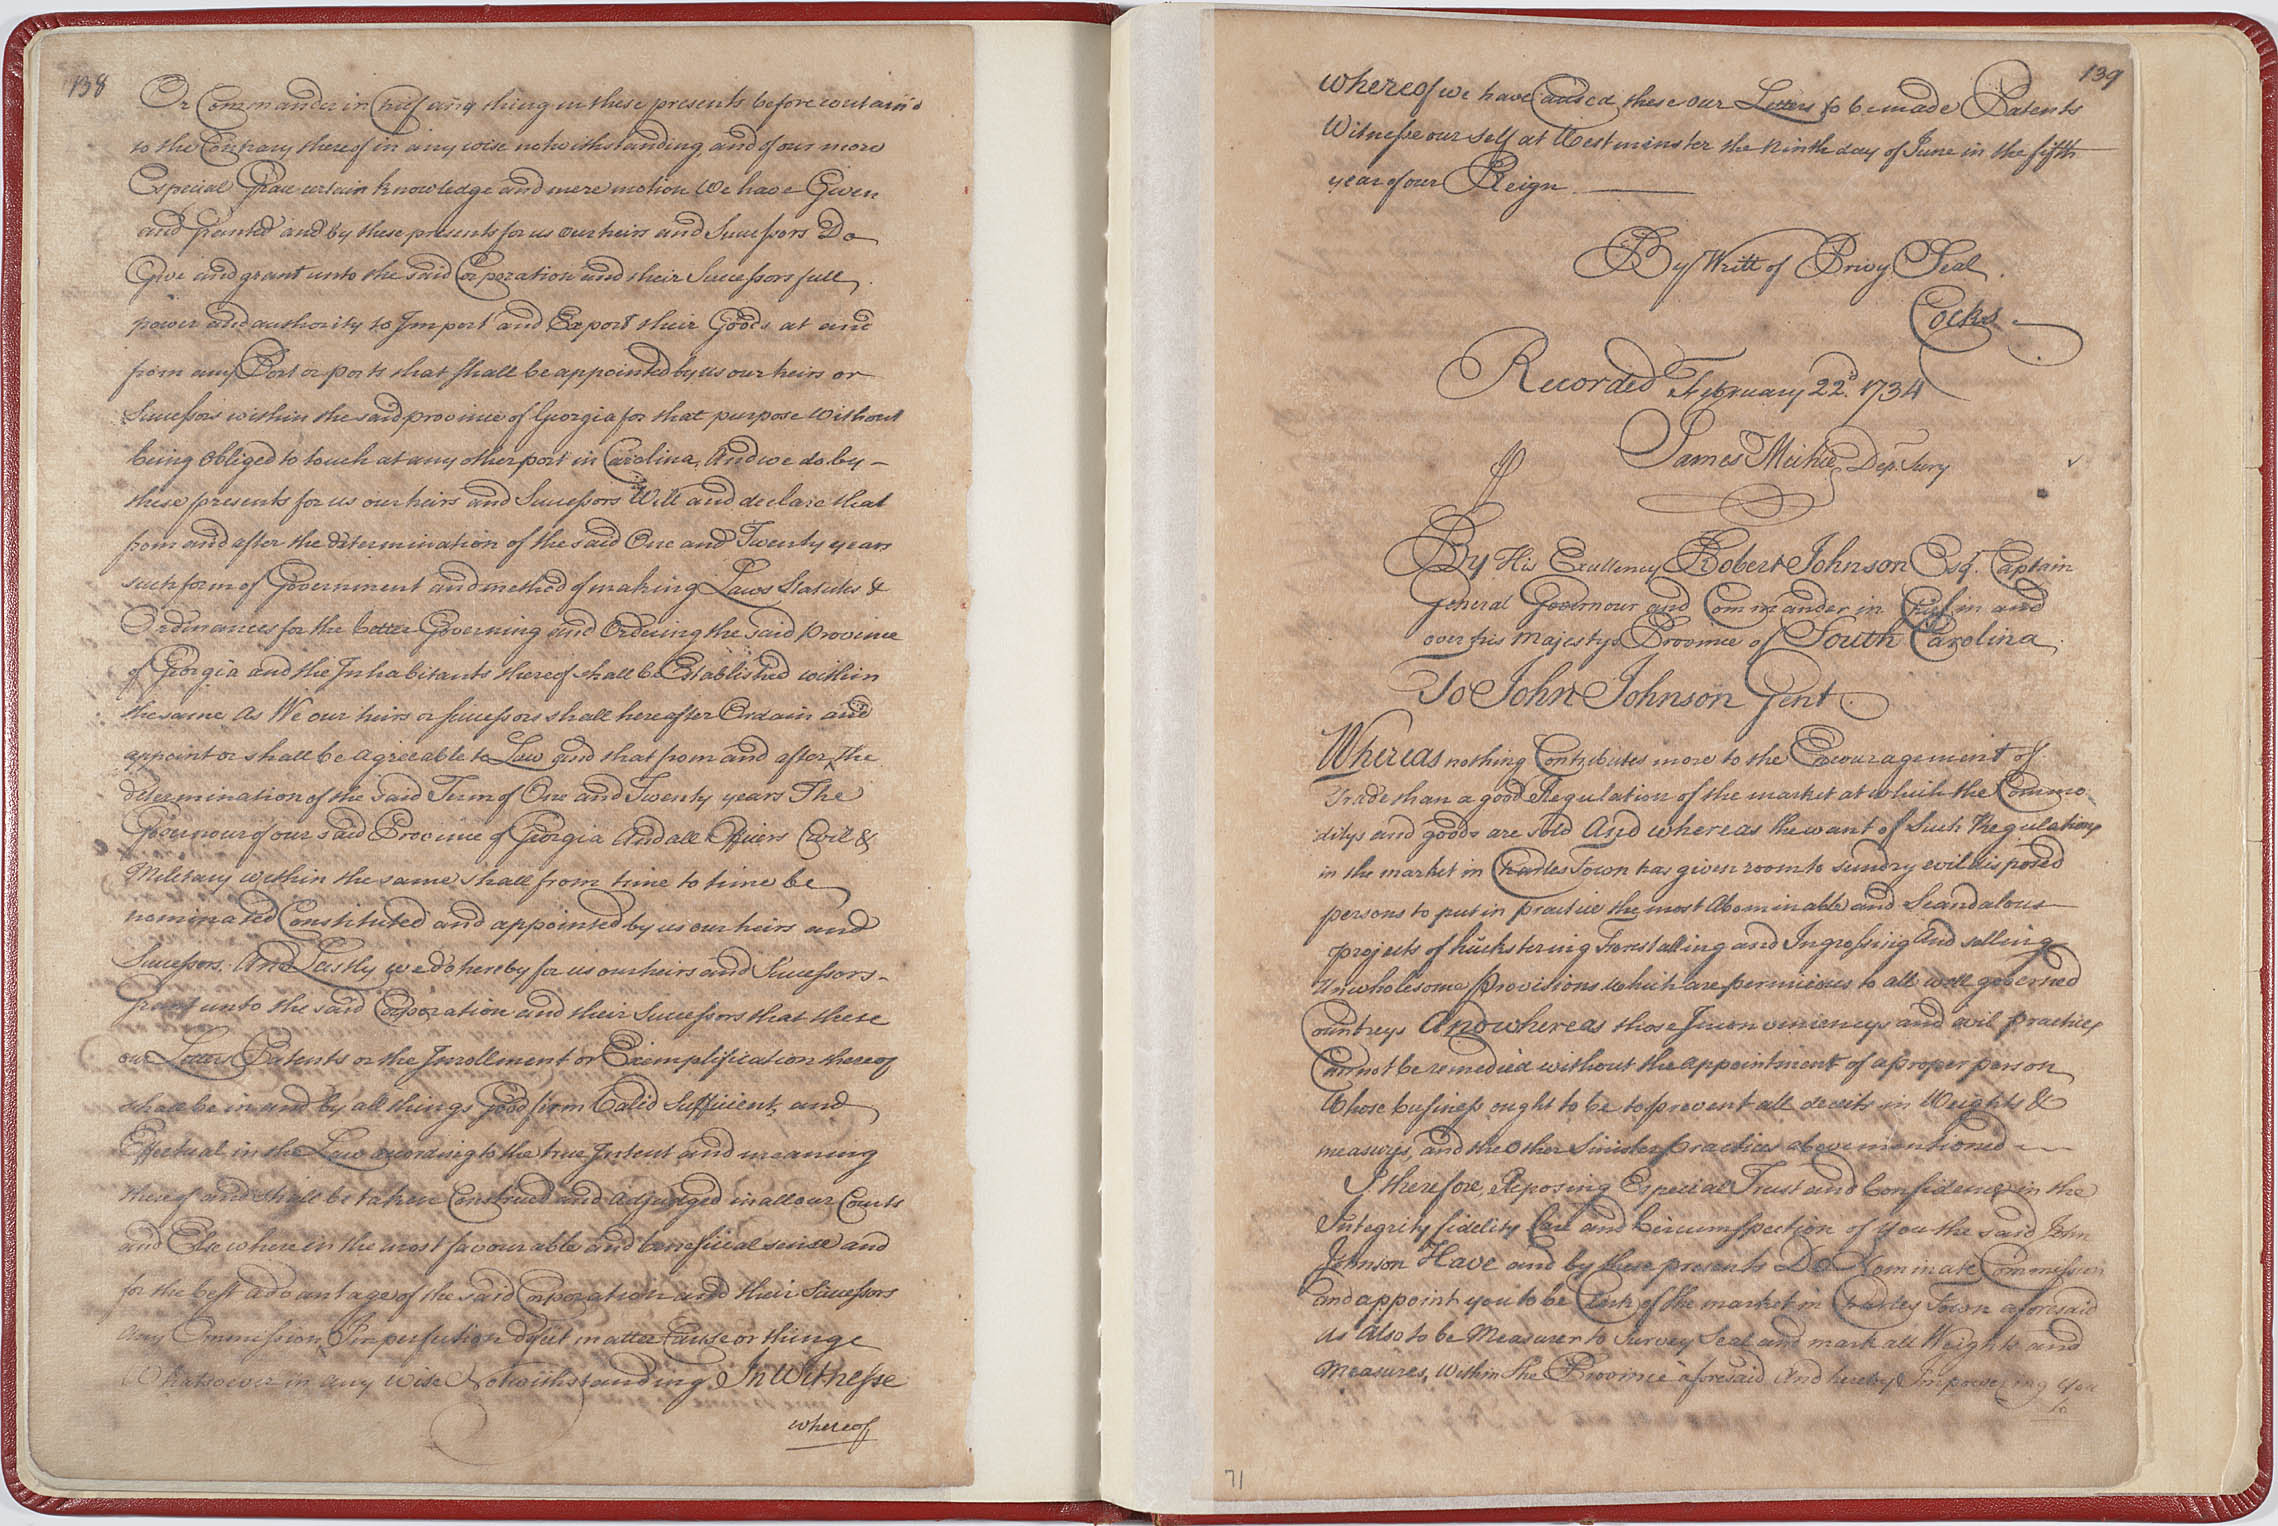 Manuscript pages from the Royal Charter for the Establishment of the Province of Georgia, signed by King George II on June 9, 1732.